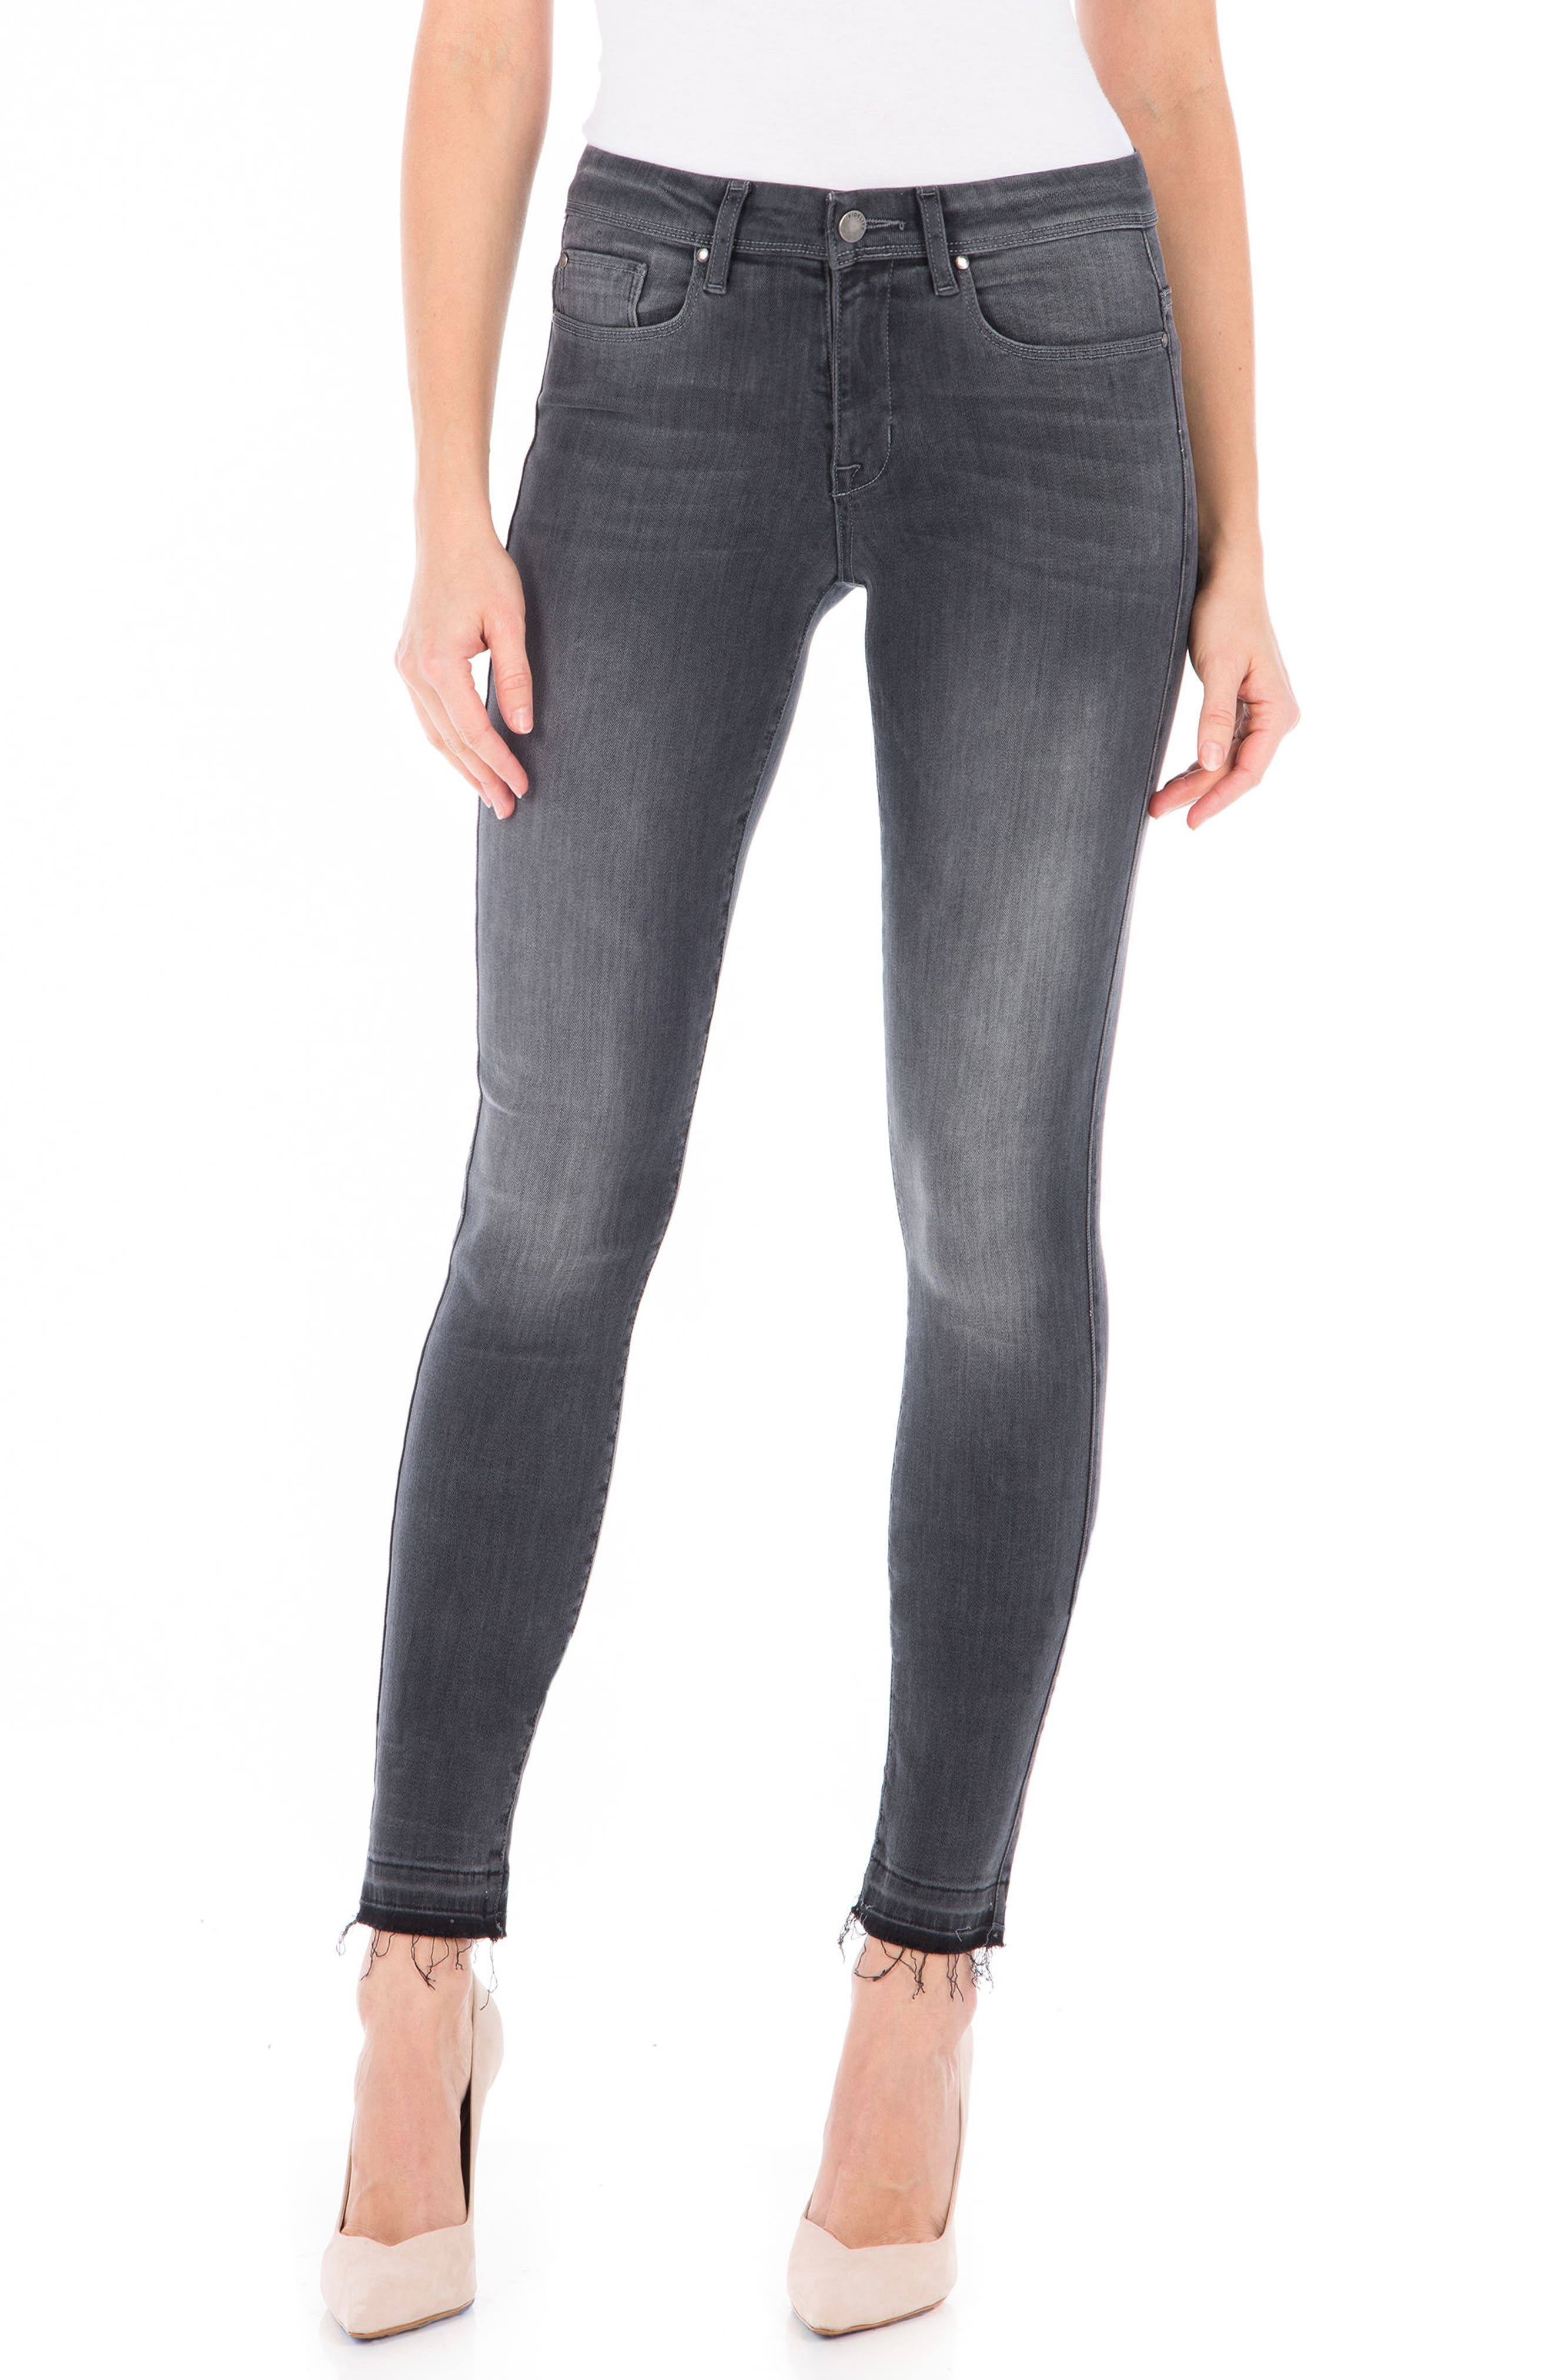 Gwen High Waist Skinny Jeans,                             Main thumbnail 1, color,                             001